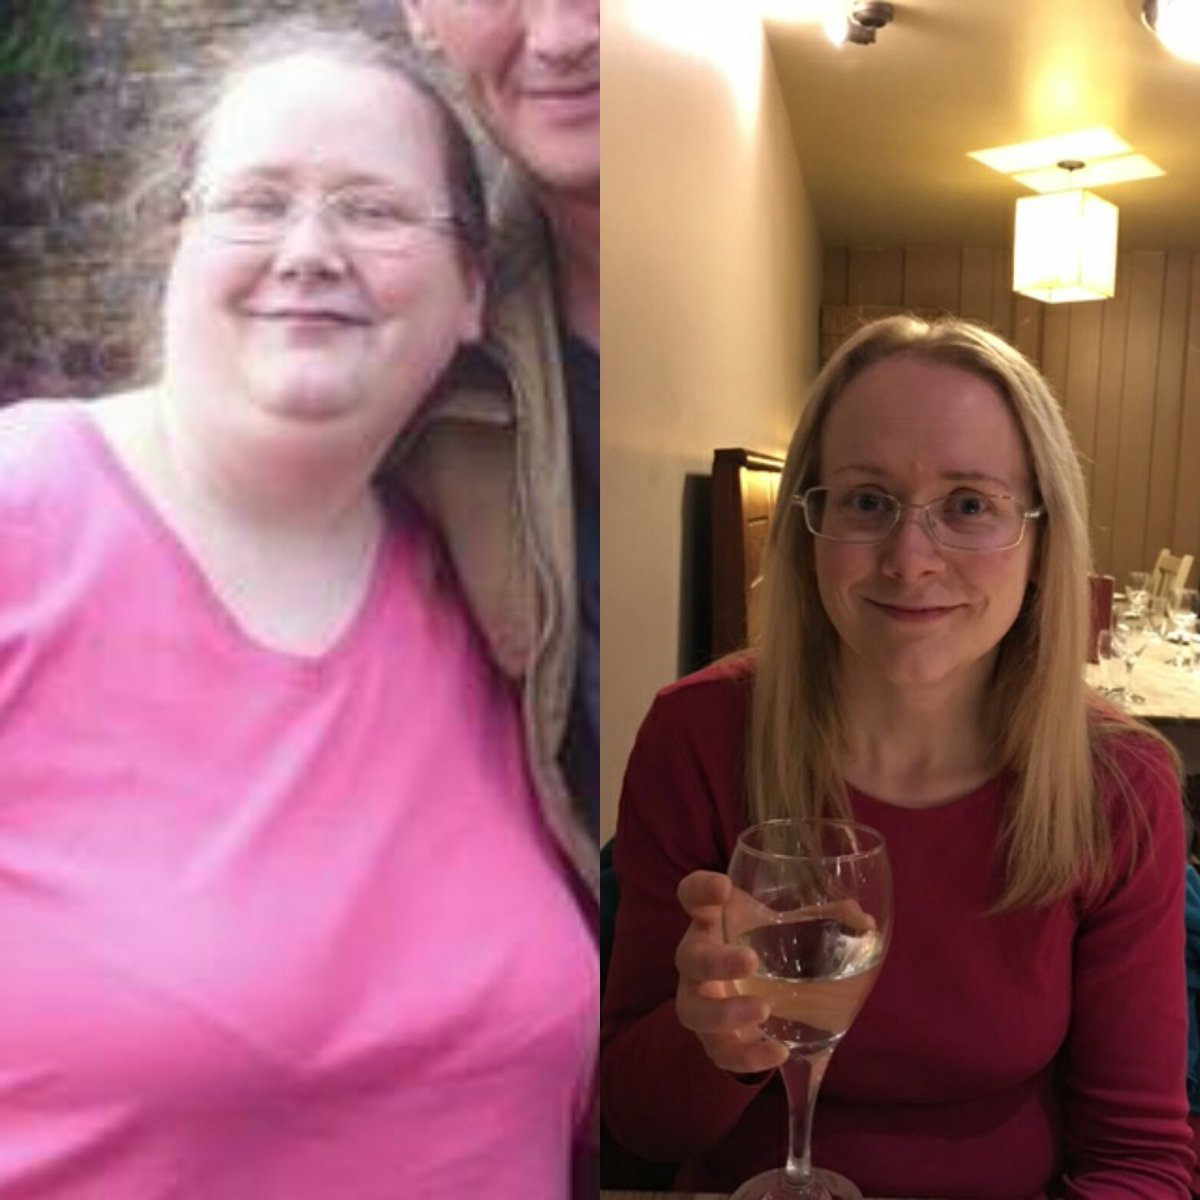 Unbelievable when I look back. 8 stone (112 lbs) weight difference. Simply life changing #slimmingworld https://t.co/n4pUVvgTv1